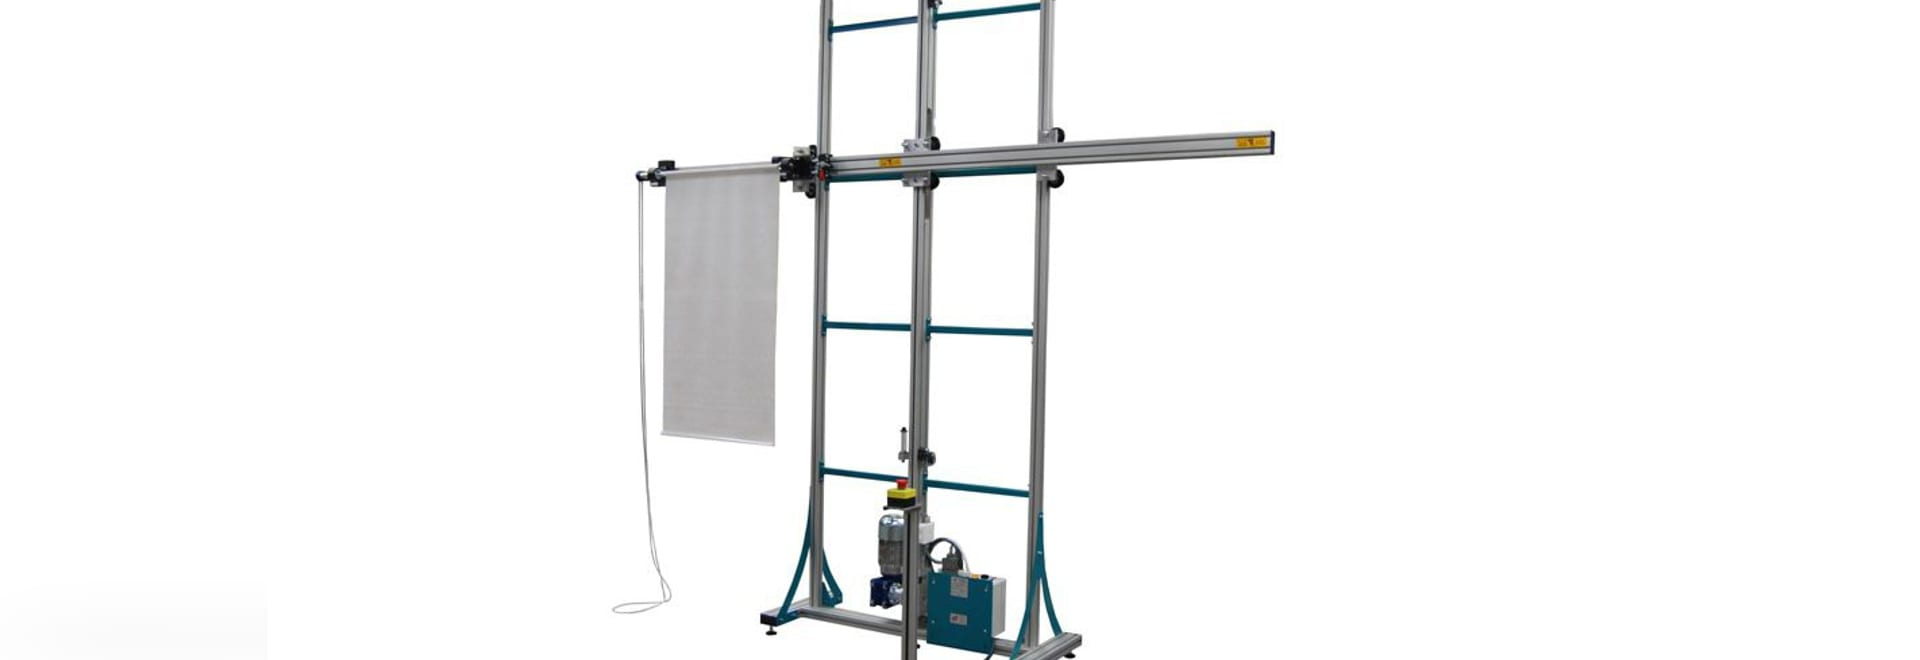 NEW: construction lift by REXEL